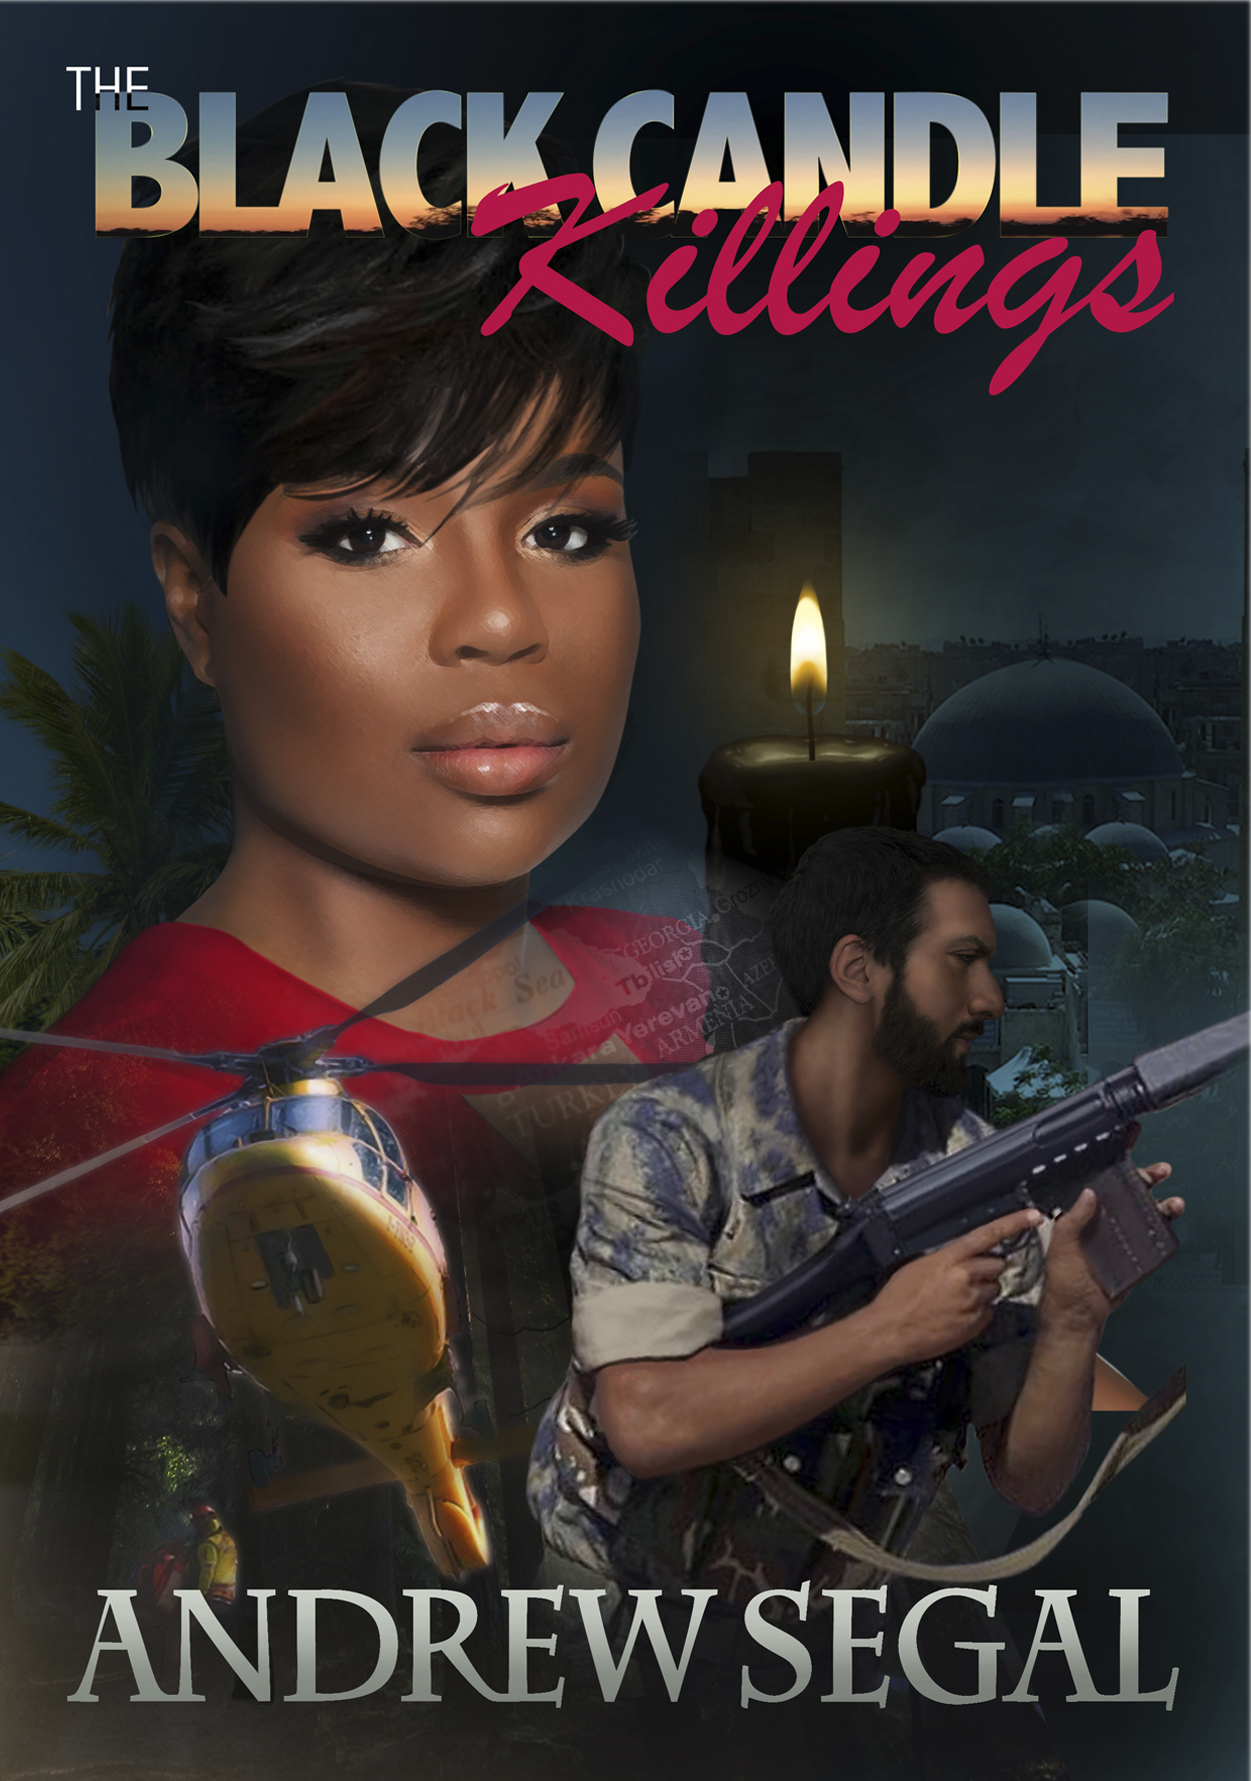 The Black Candle Killings cover